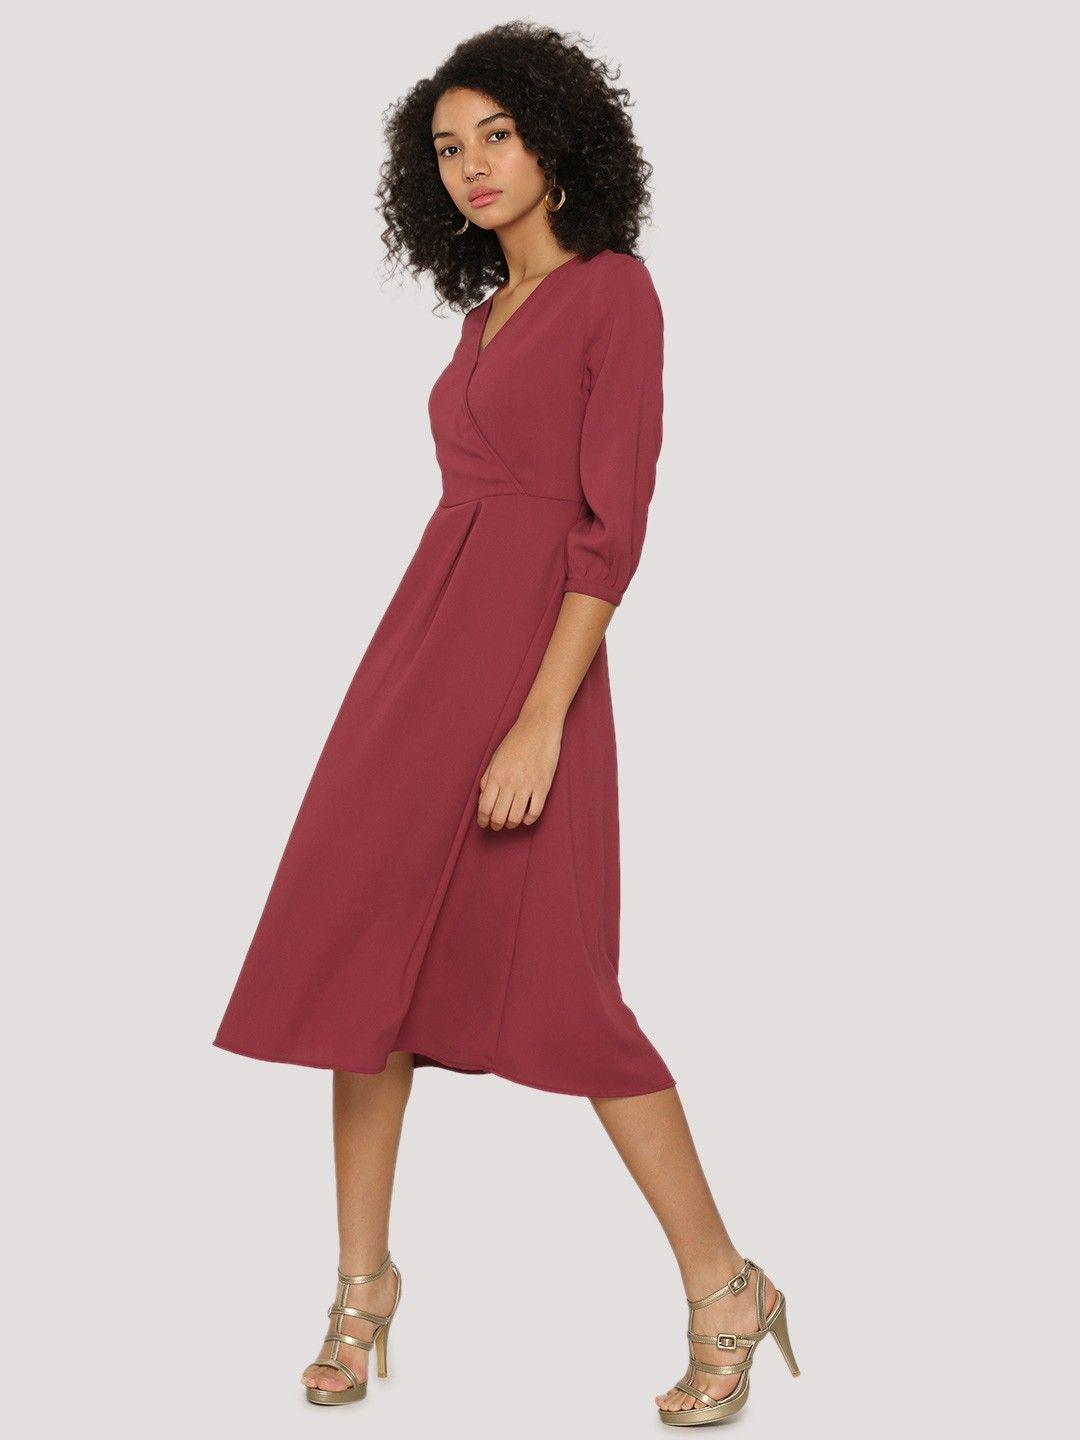 384953ddb042 Buy Front Wrap Midi Dress For Women - Women s Maroon Midi Dresses Online in  India